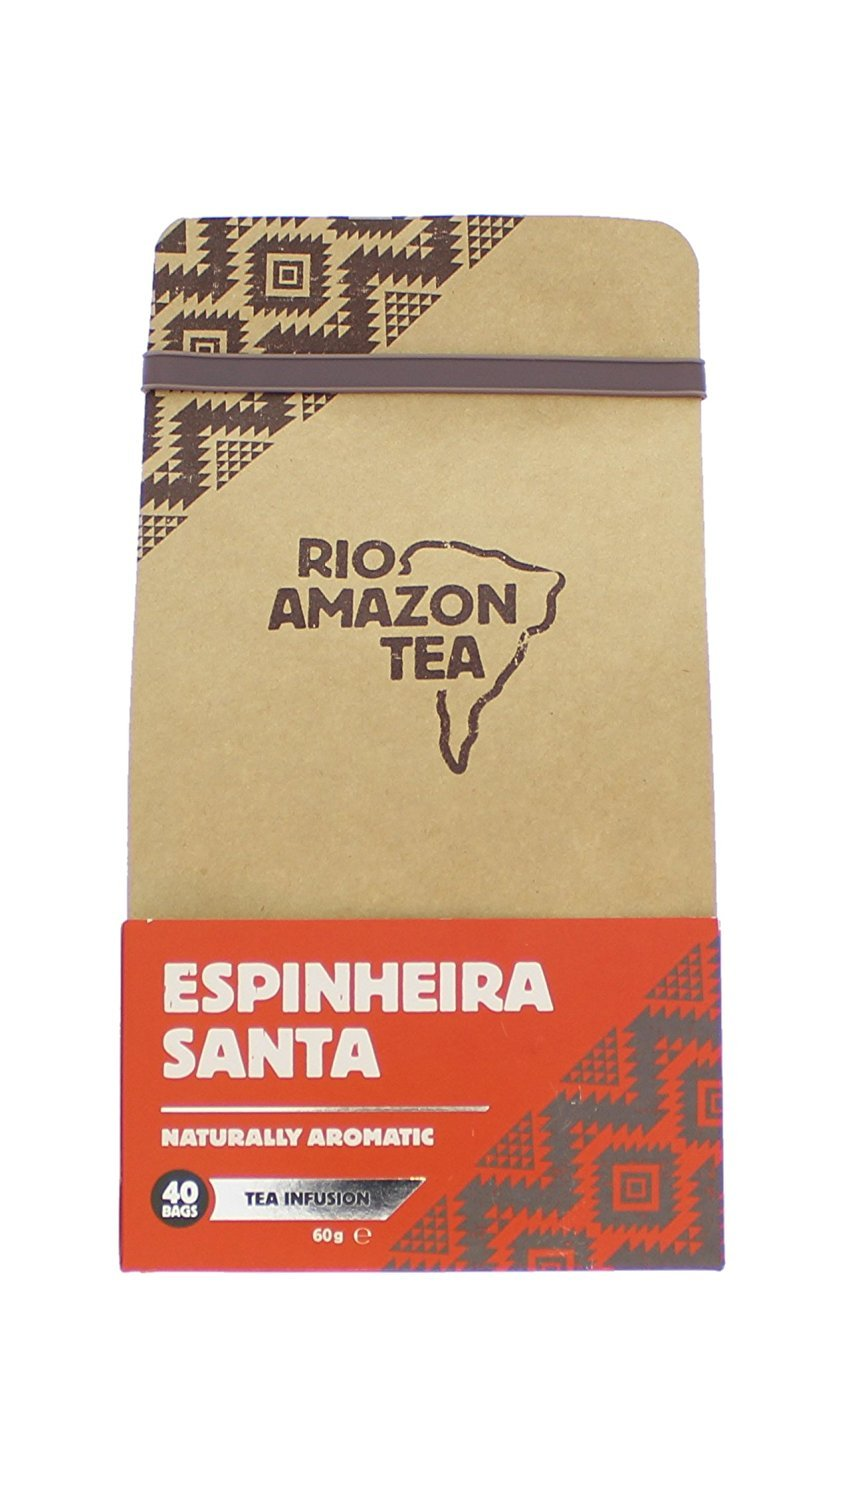 Espinheira Santa Tea 40 Teabags by Rio Amazon